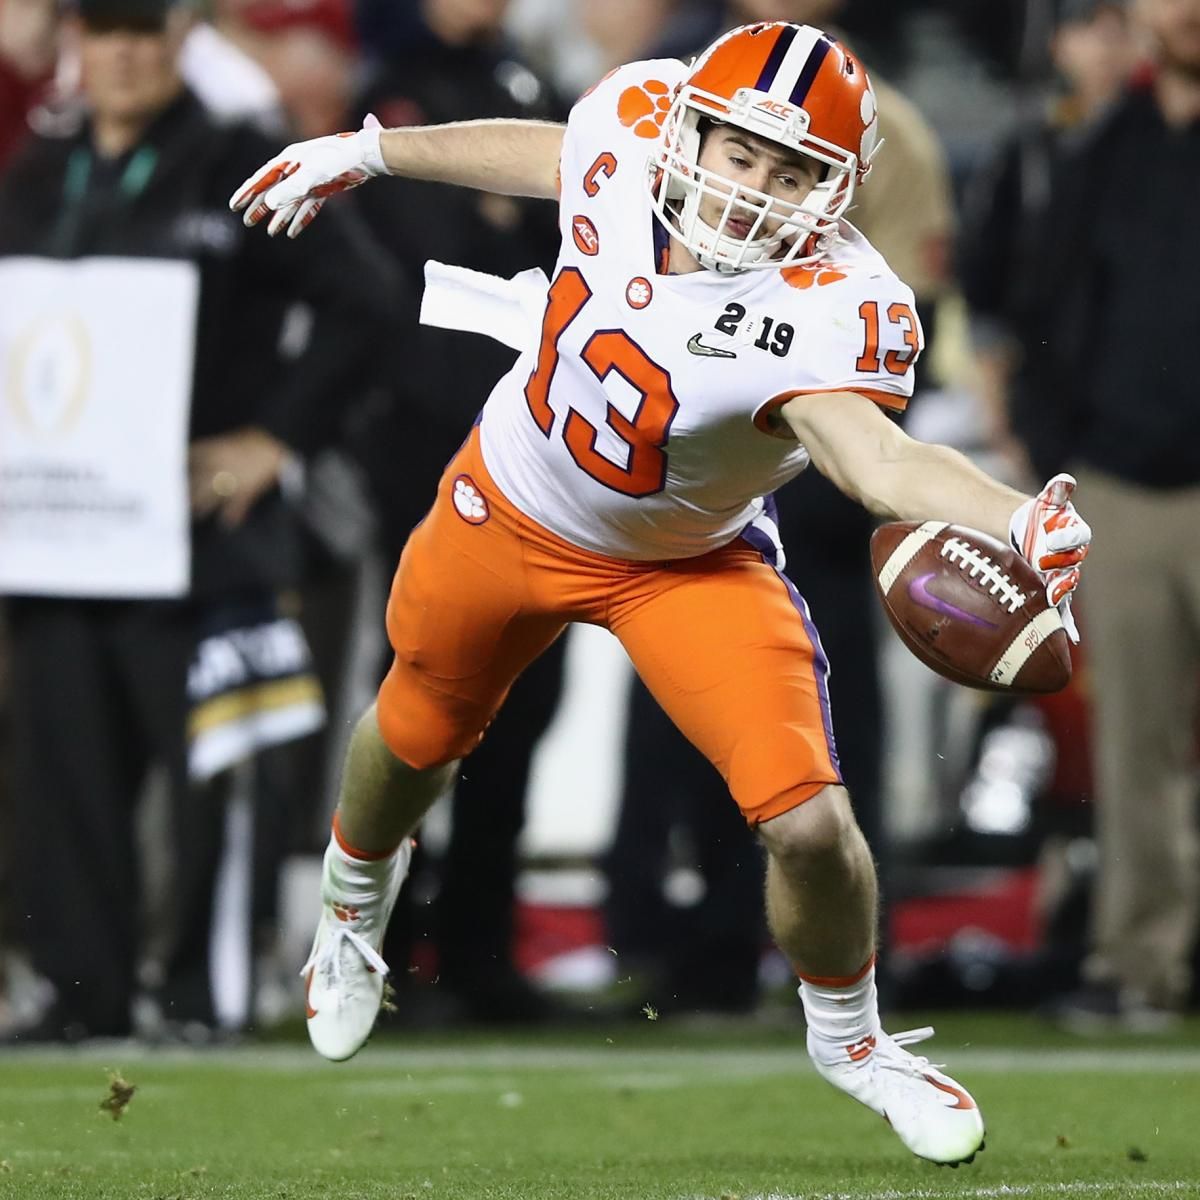 Hunter Renfrow NFL Draft 2019: Scouting Report For Oakland